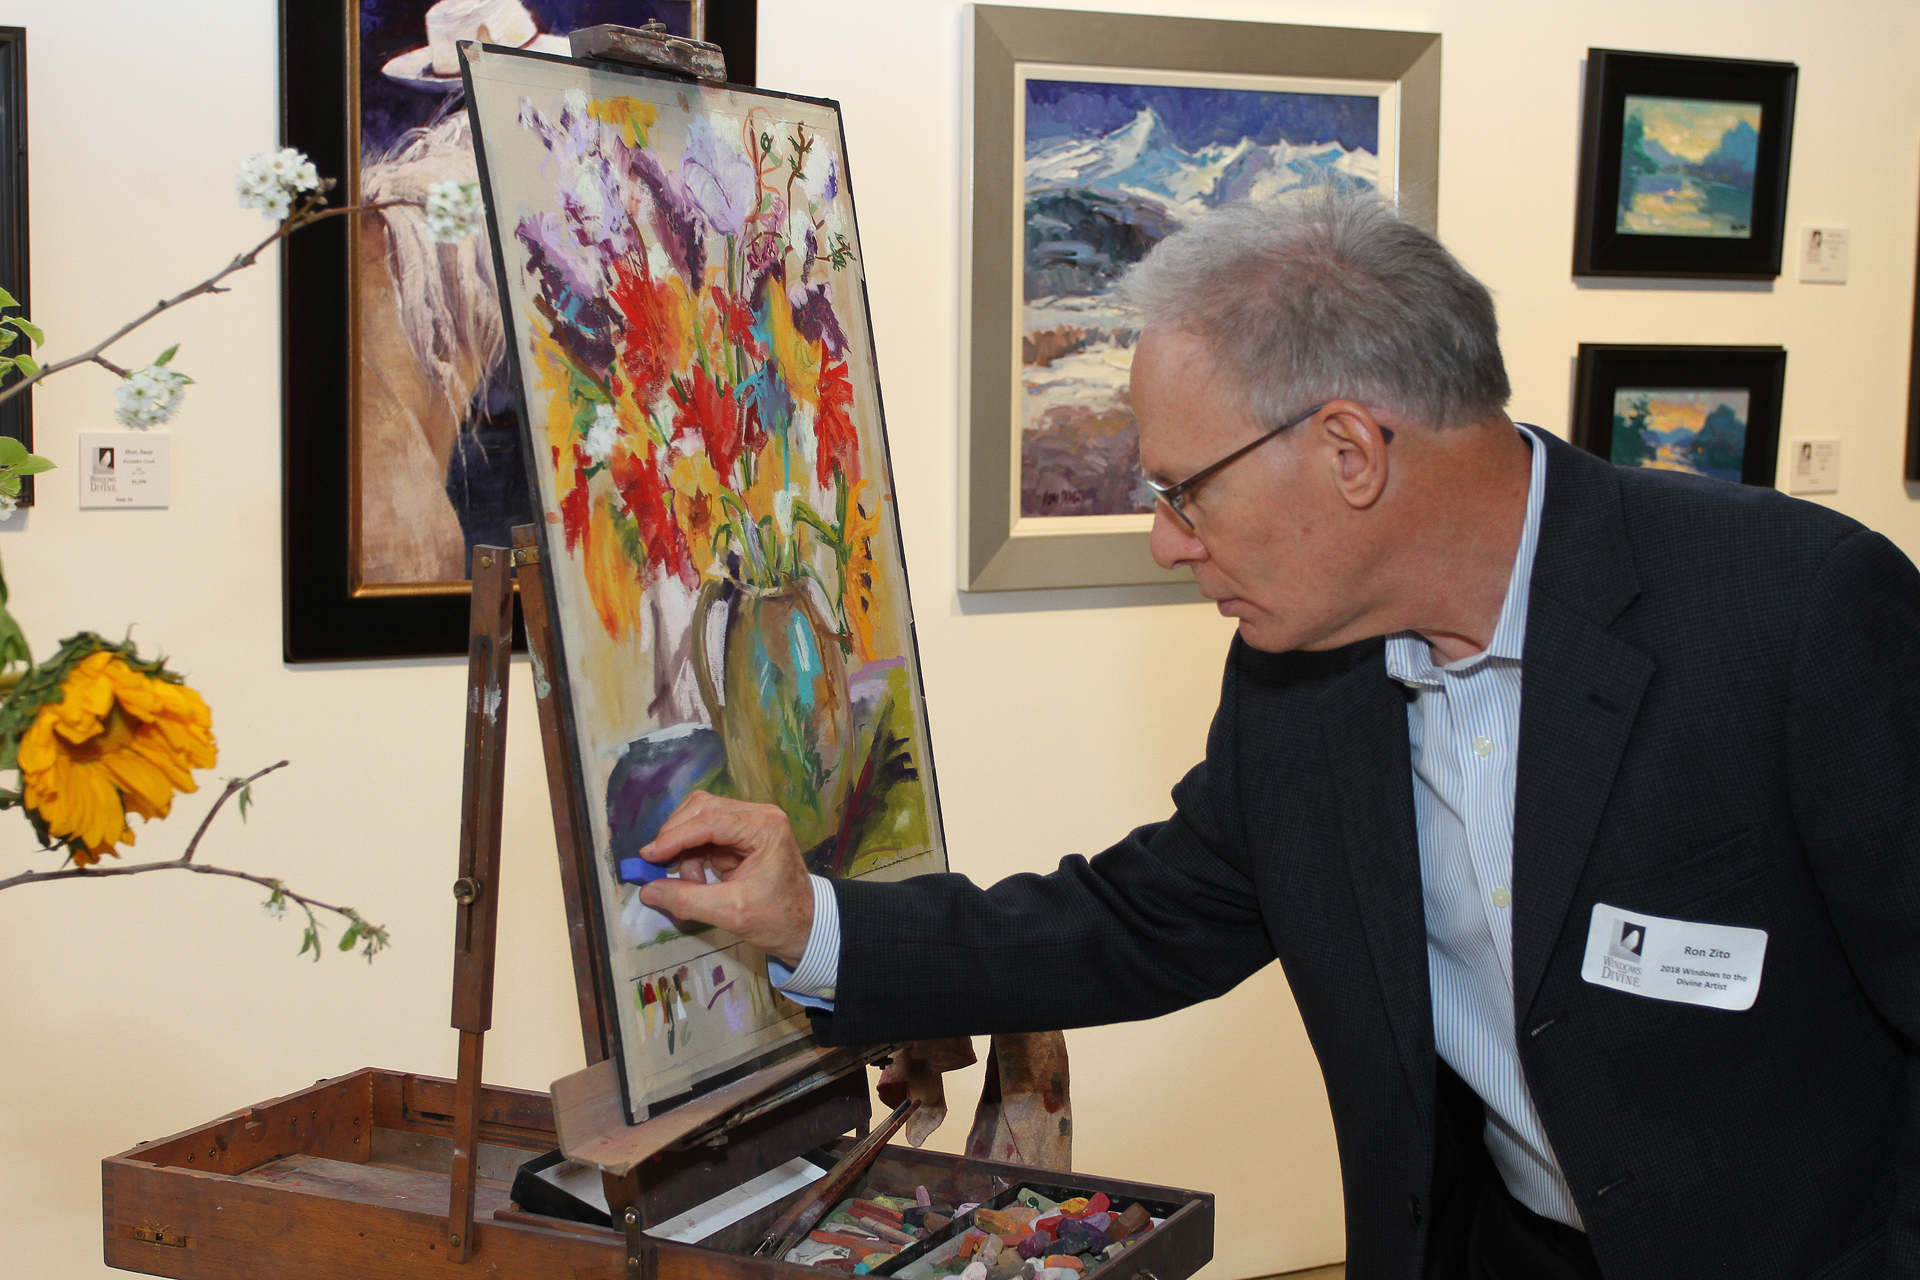 13 – IMG_5068_Opening Gala_Windows 2018 Artist Ron Zito painting on Lombardi demo